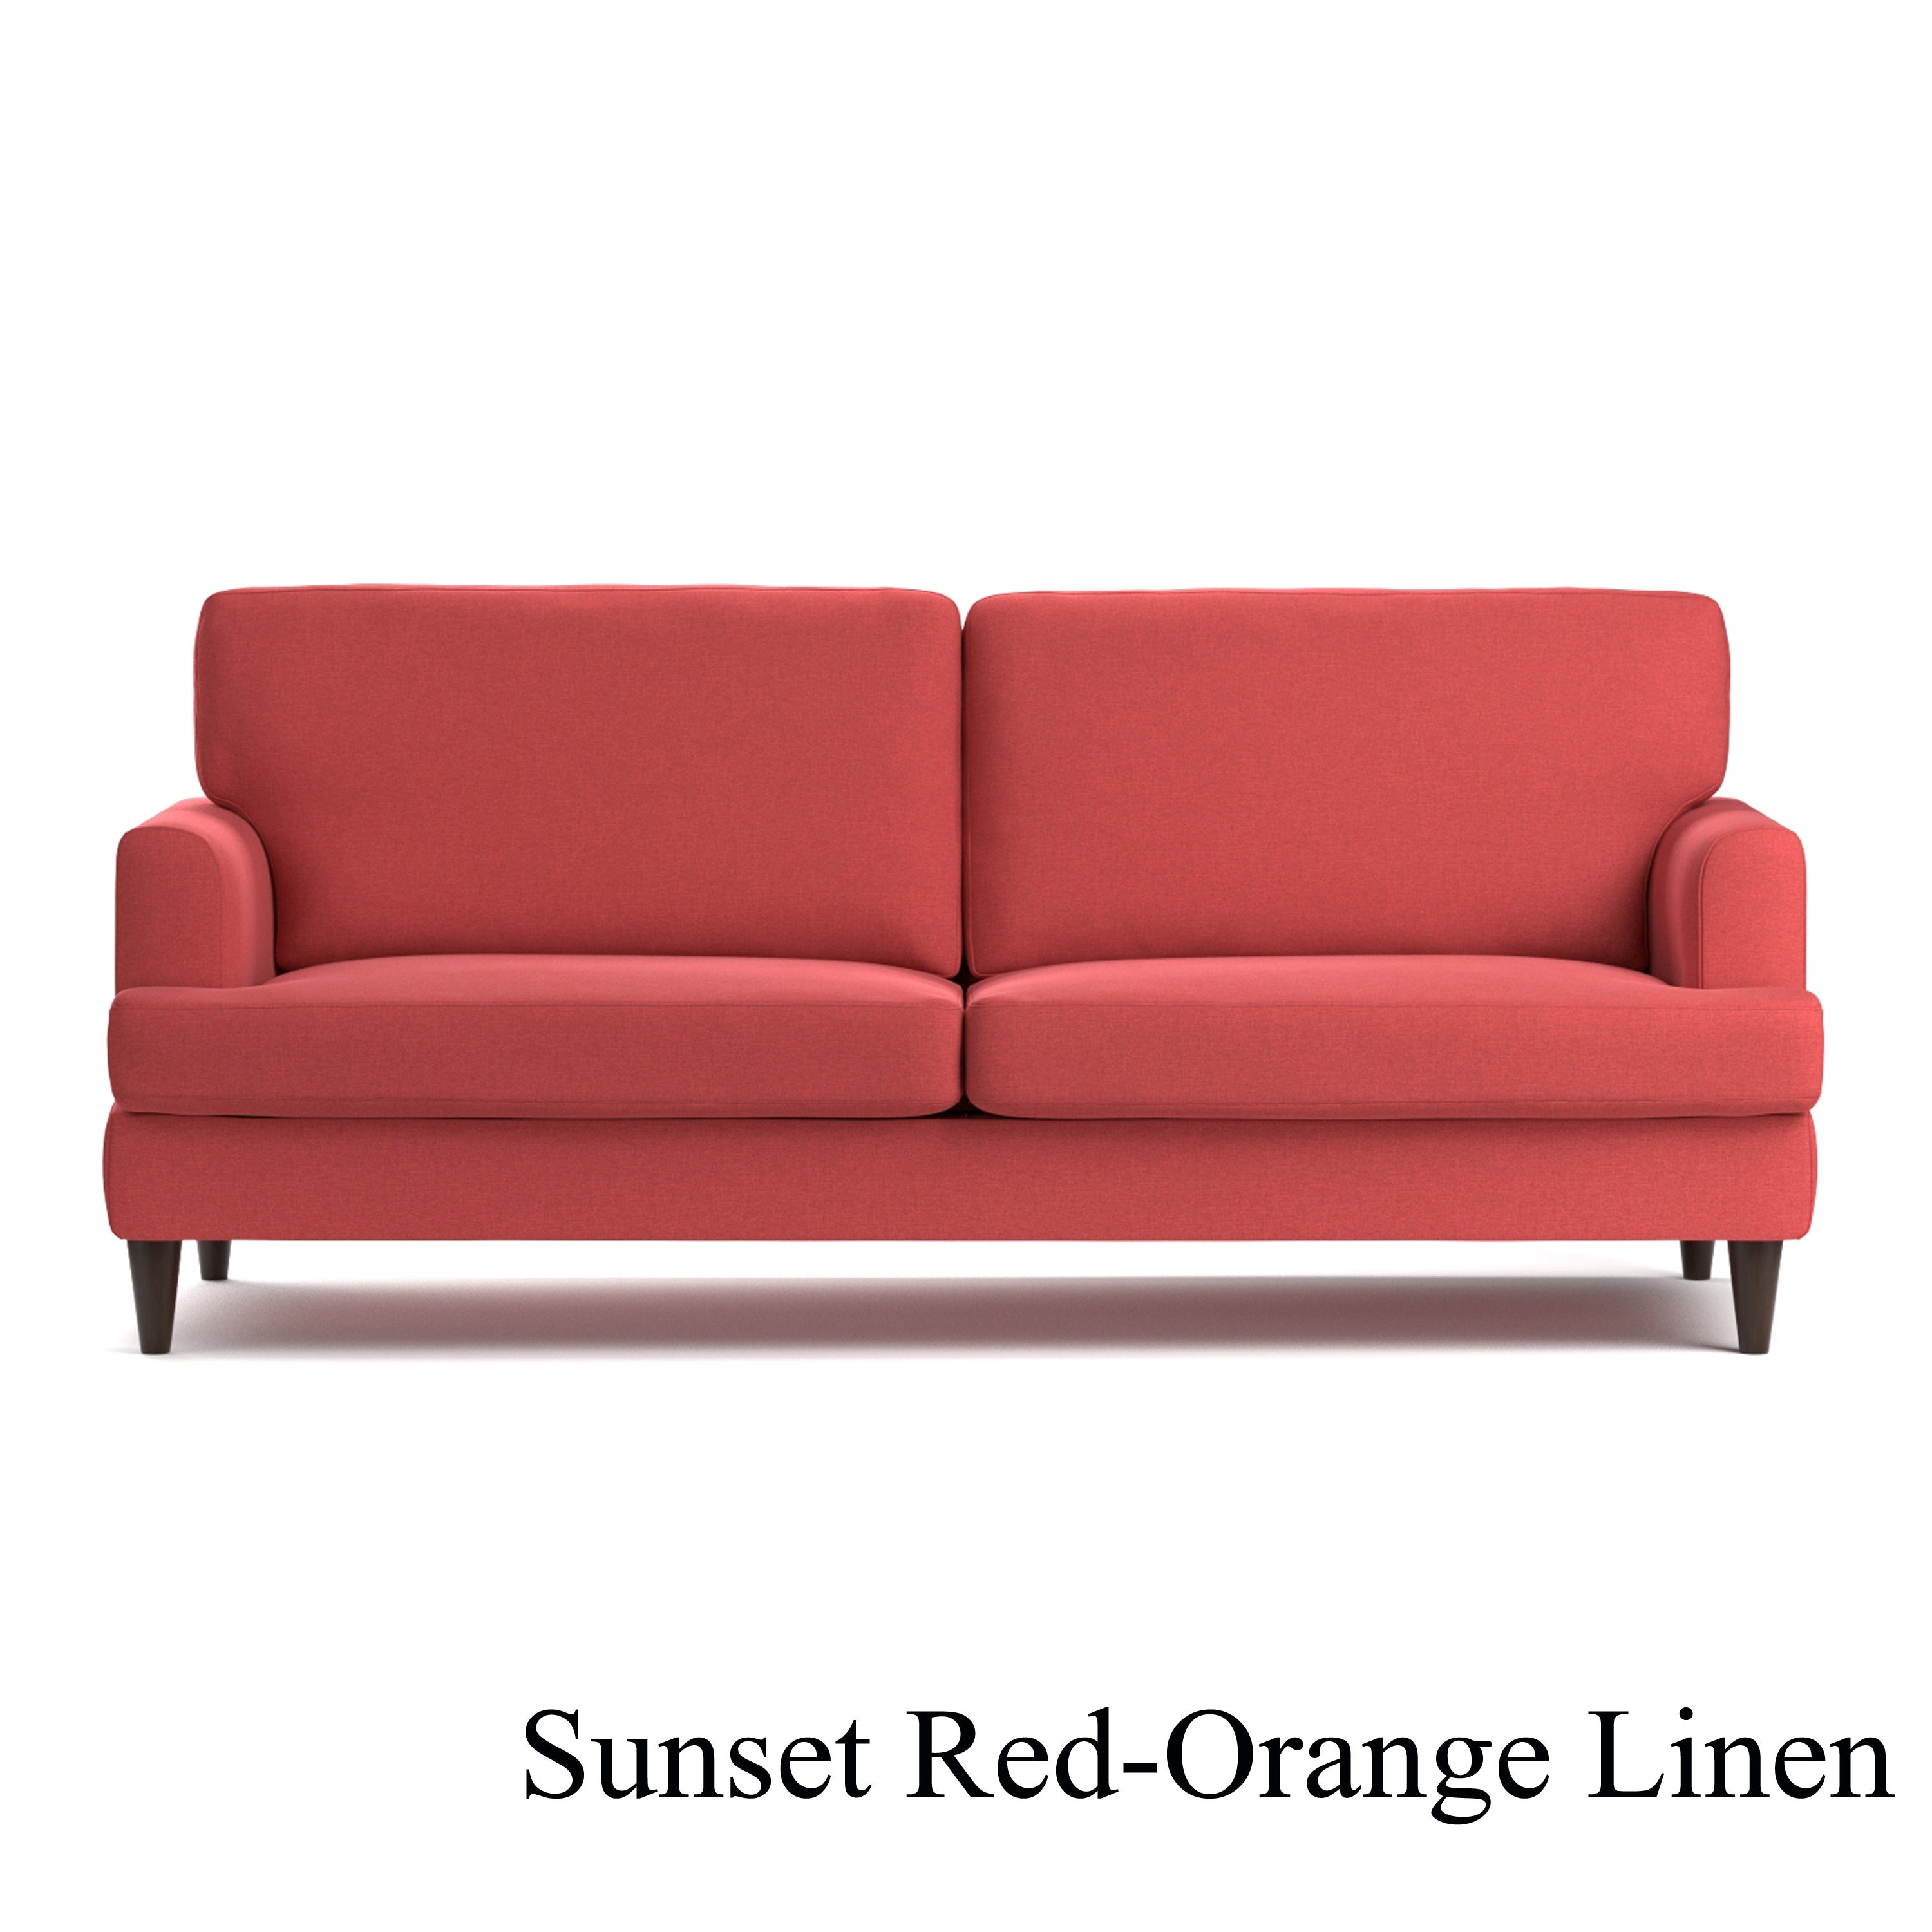 Orange Sofa Couch Slipcovers Online At Our Best Furniture Covers Deals